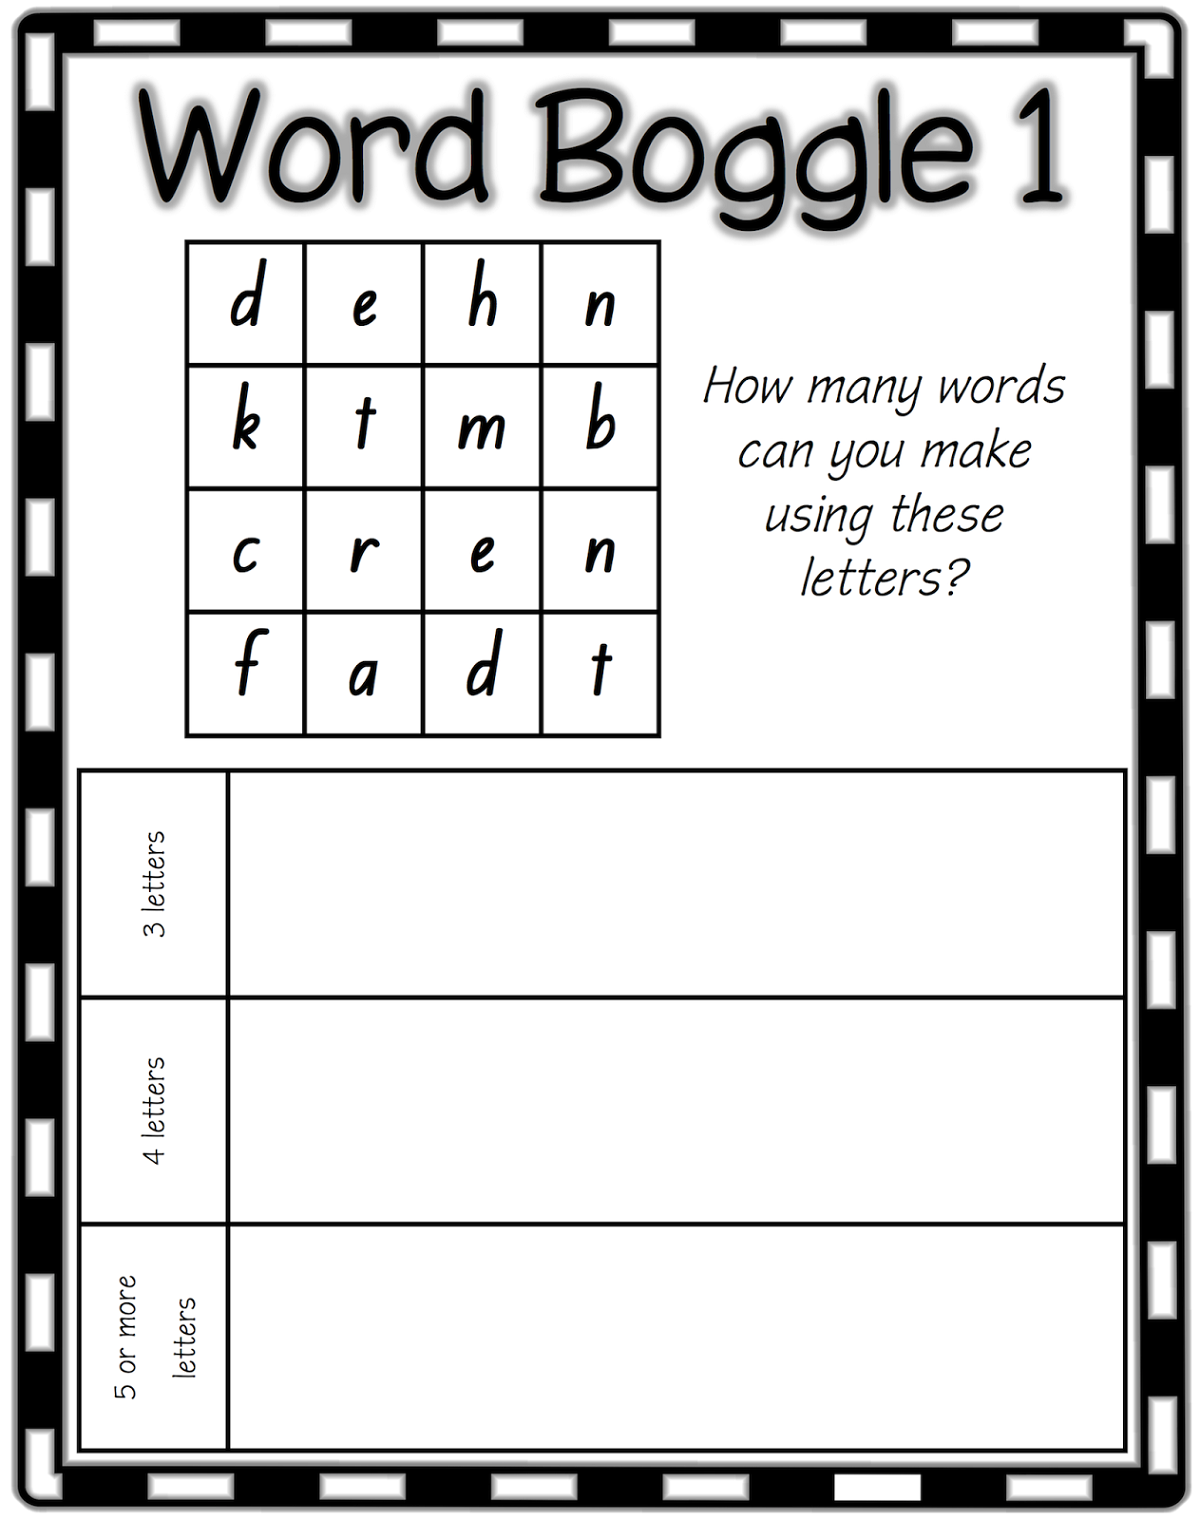 boggle word game sheet